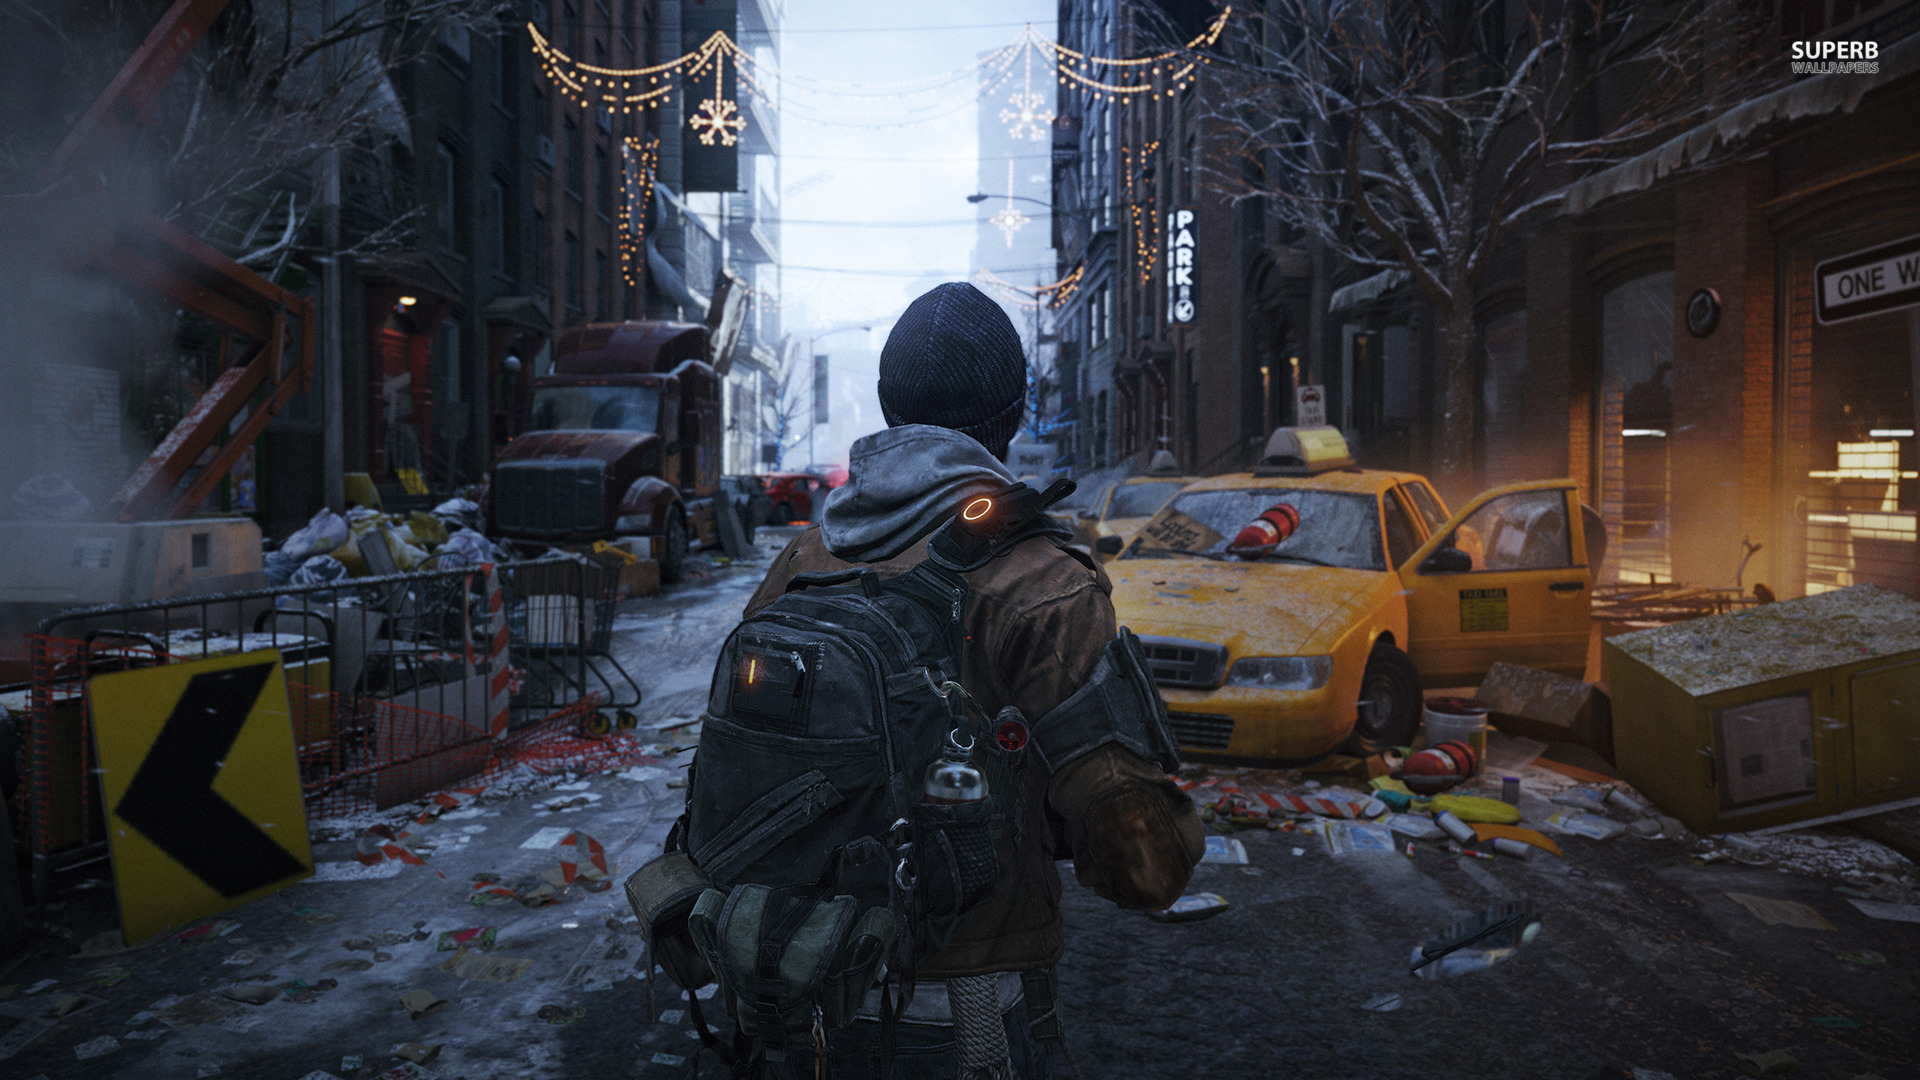 Open Beta Spotted For The Division Later This Month